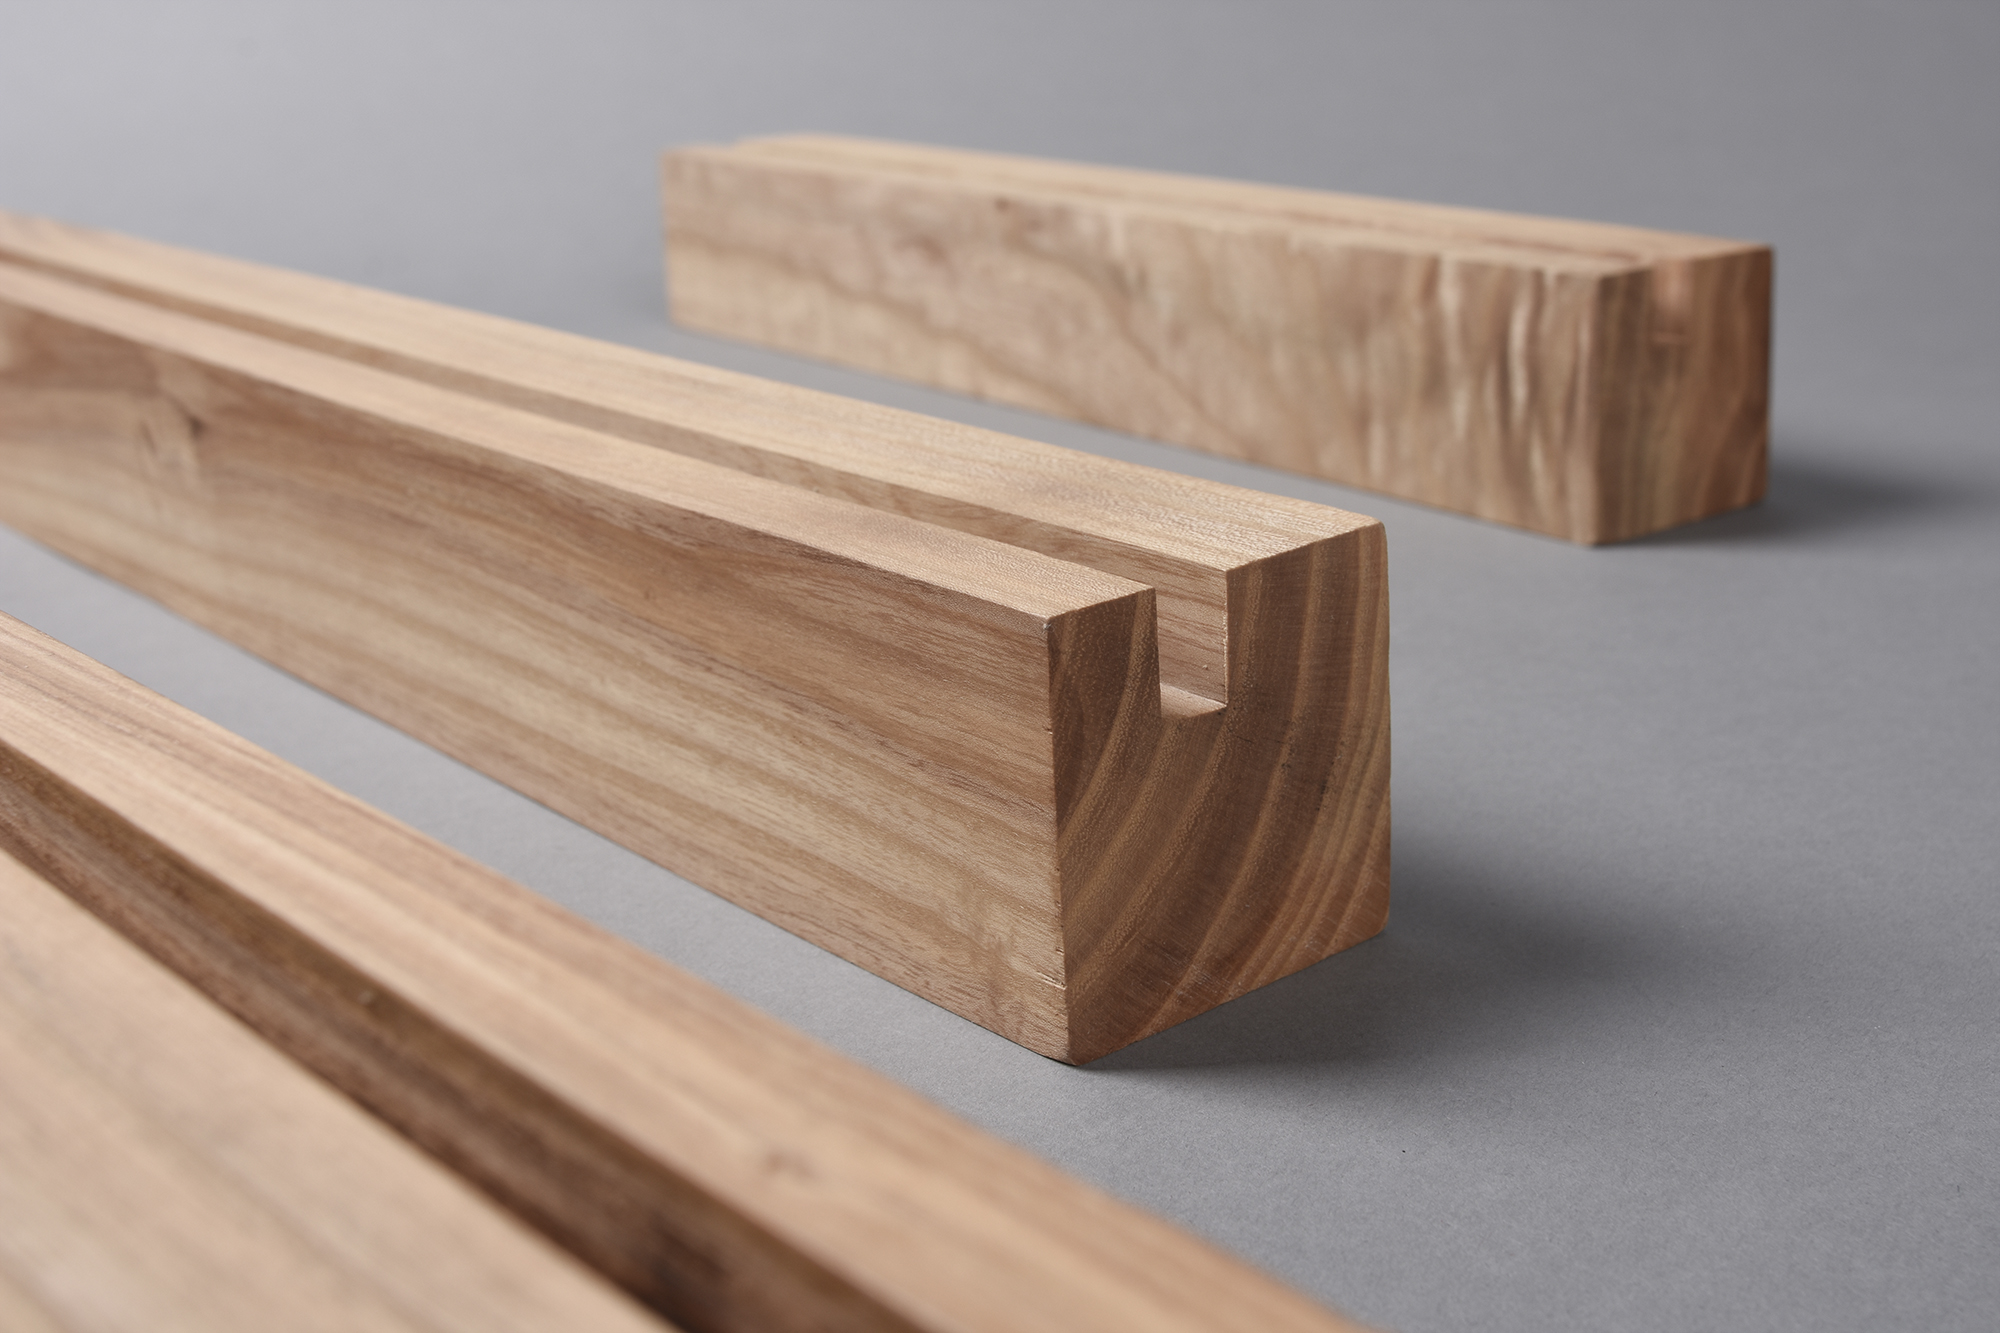 Wooden ledge for professional photography displays